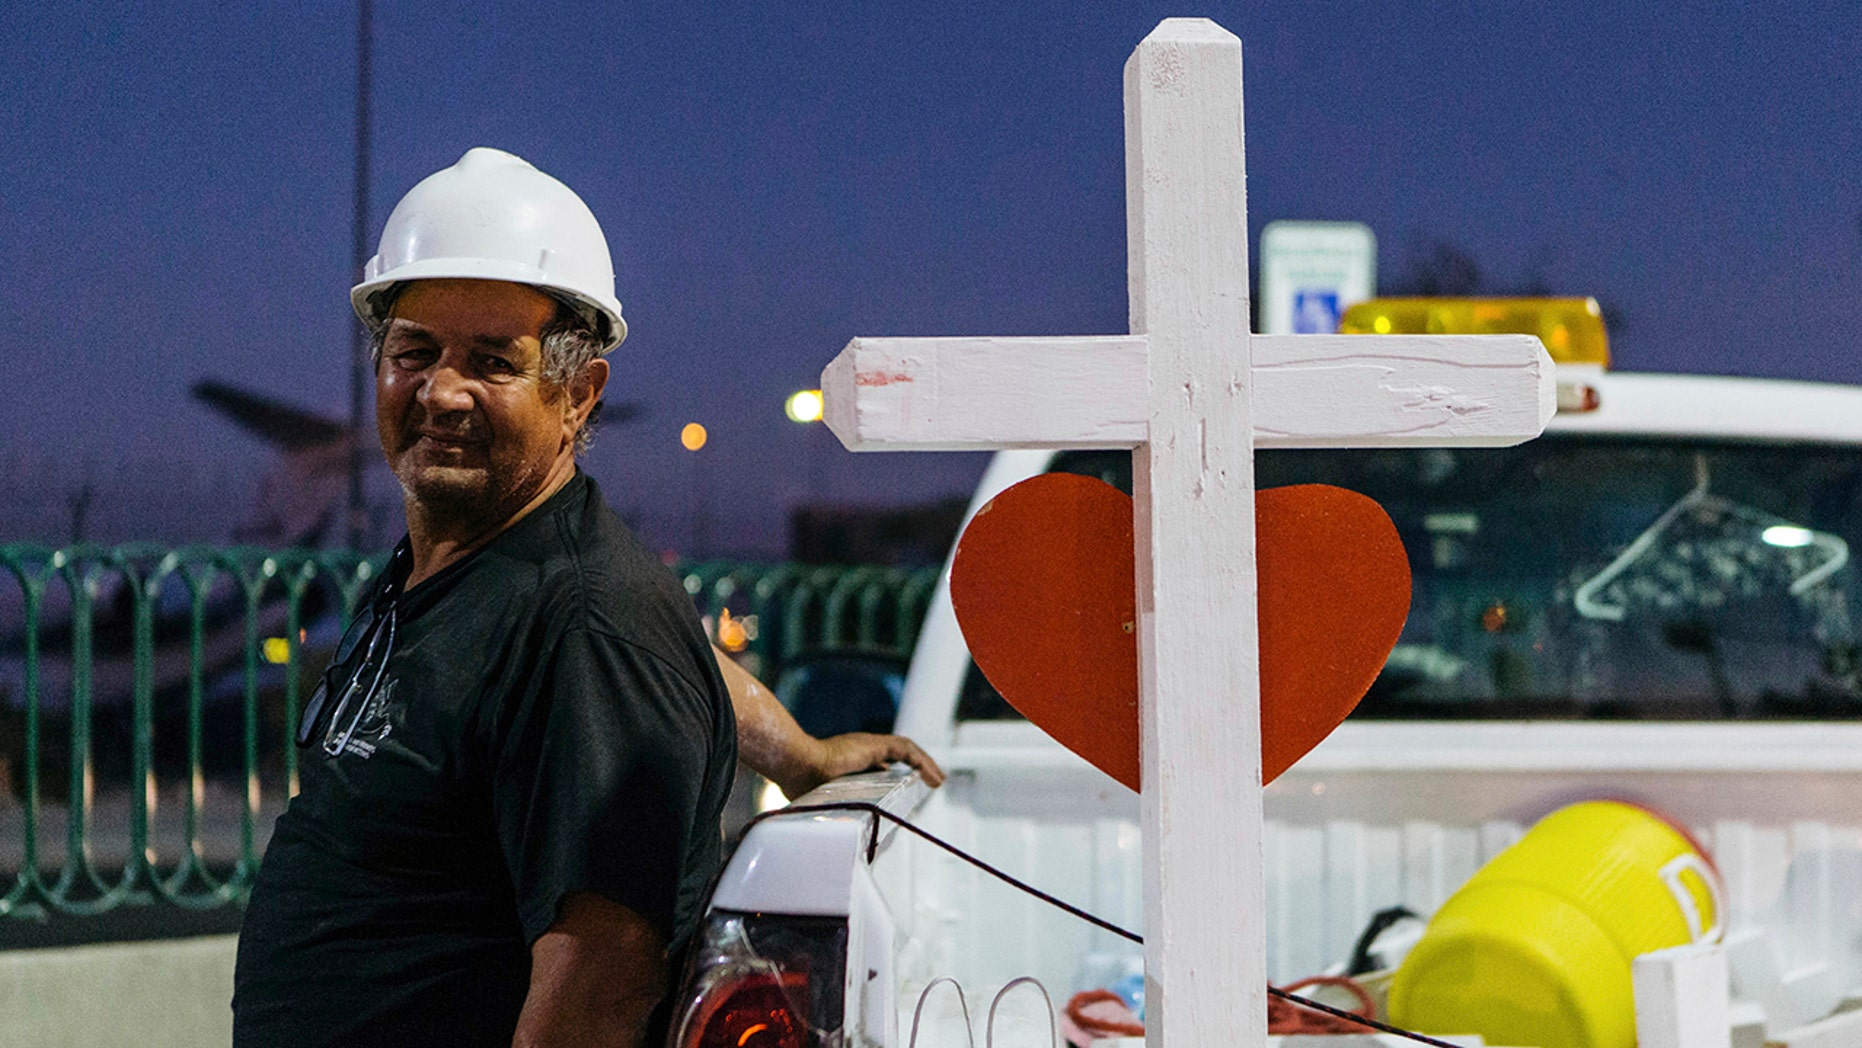 A memorial displaying 58 crosses by Greg Zanis stands at the Welcome To Las Vegas Sign Thursday, Oct. 5, 2017, in Las Vegas. (Mikayla Whitmore/Las Vegas Sun via AP)